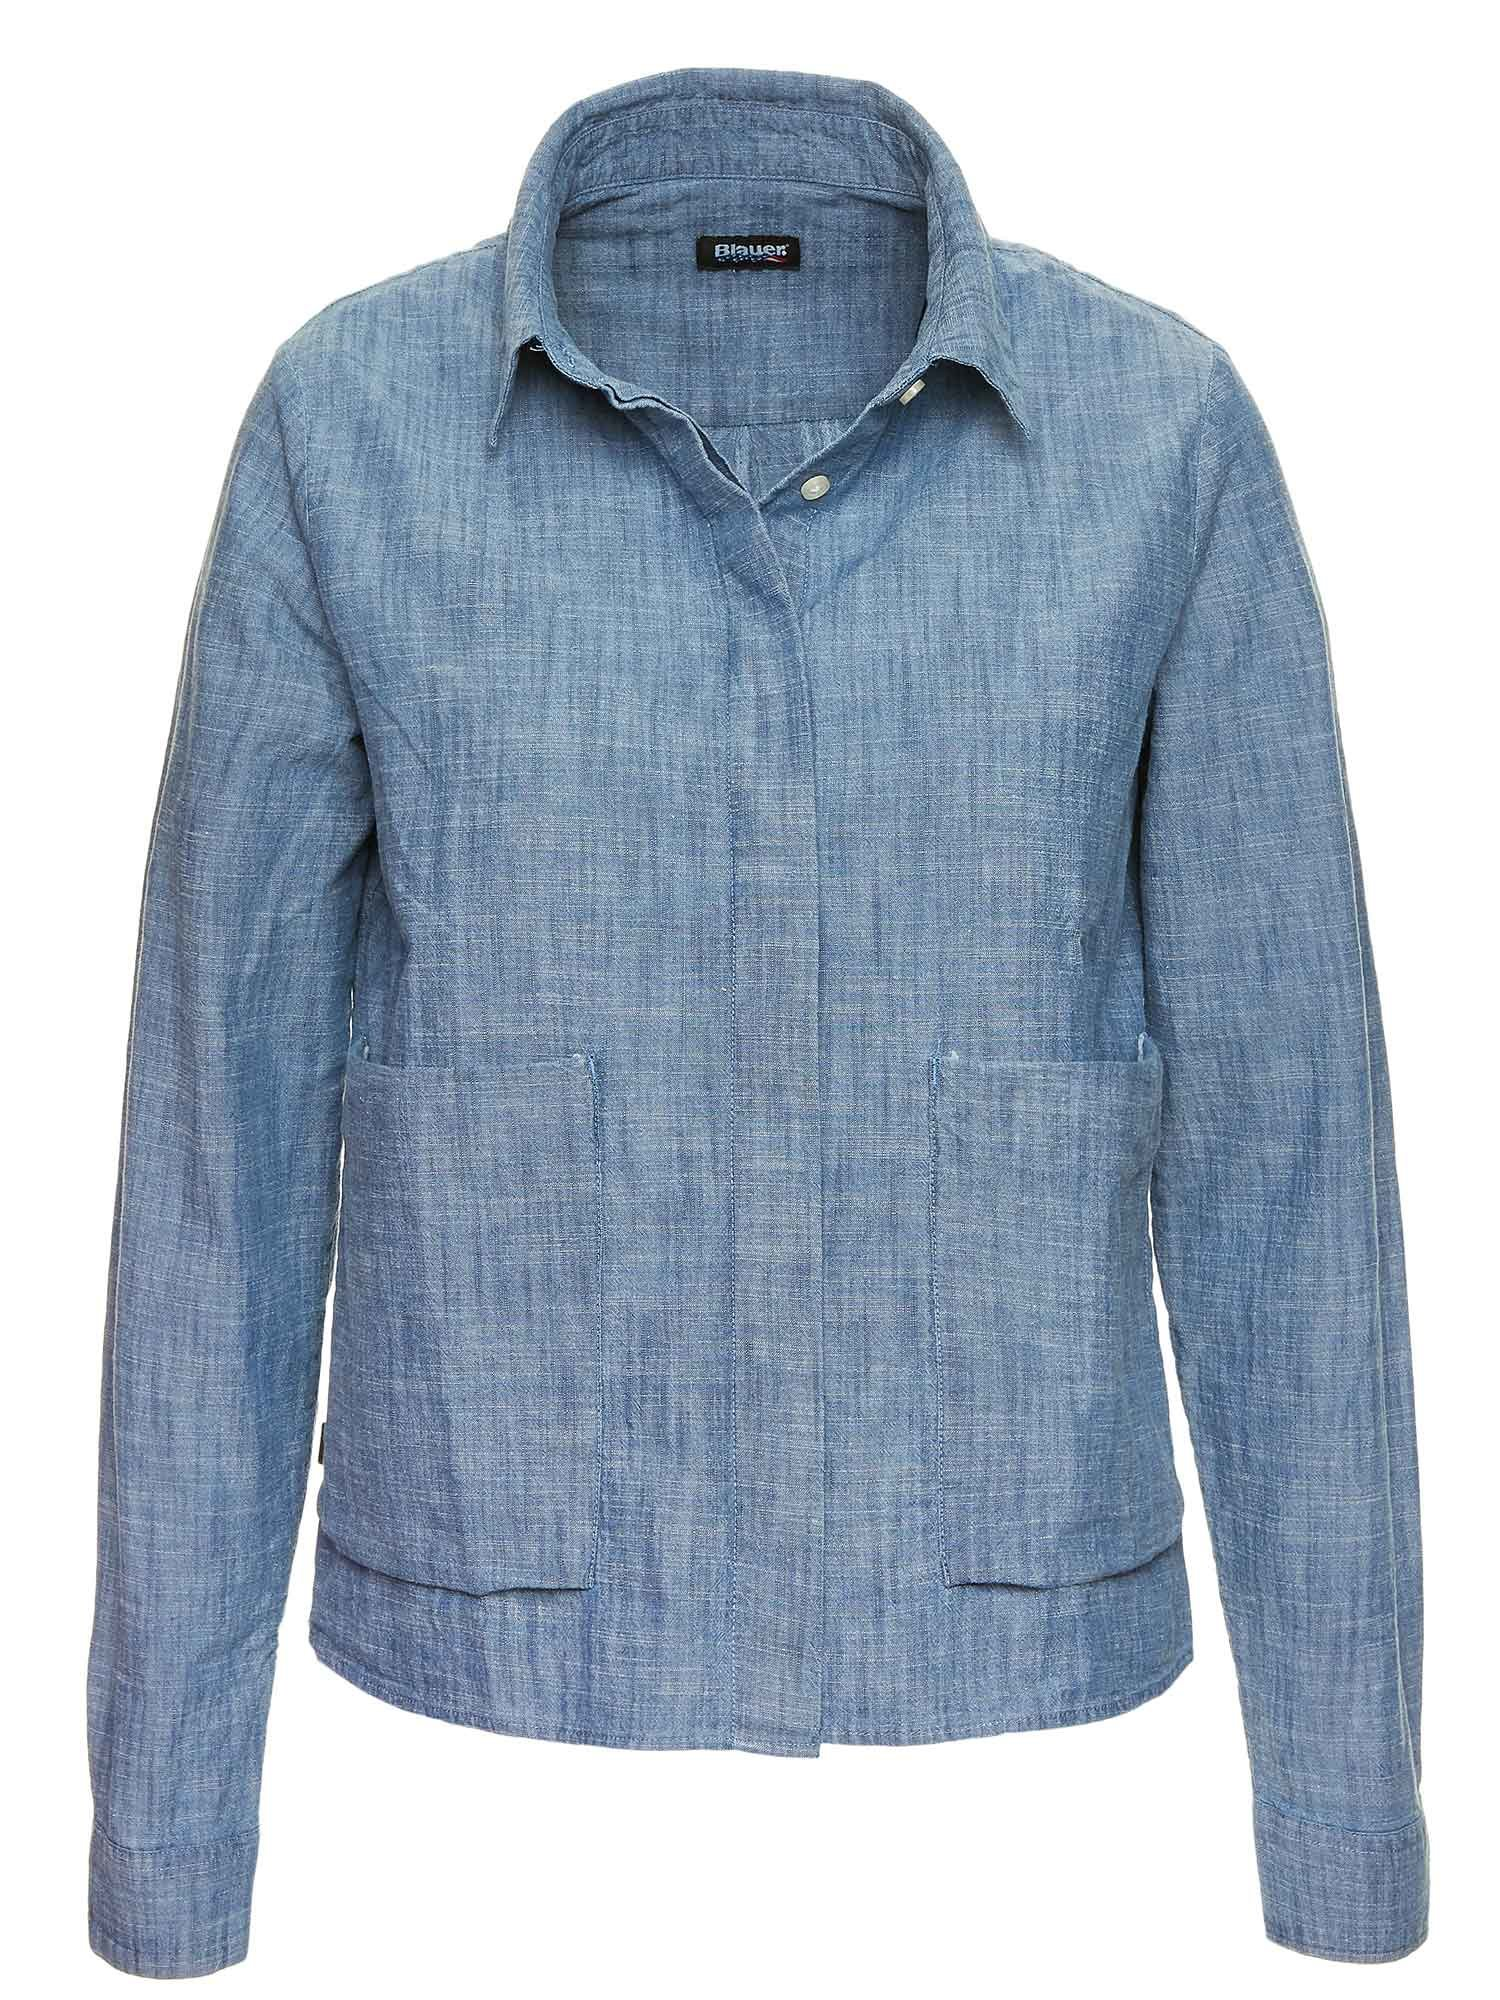 CAMICIA IN CHAMBRAY INDIGO - Blauer